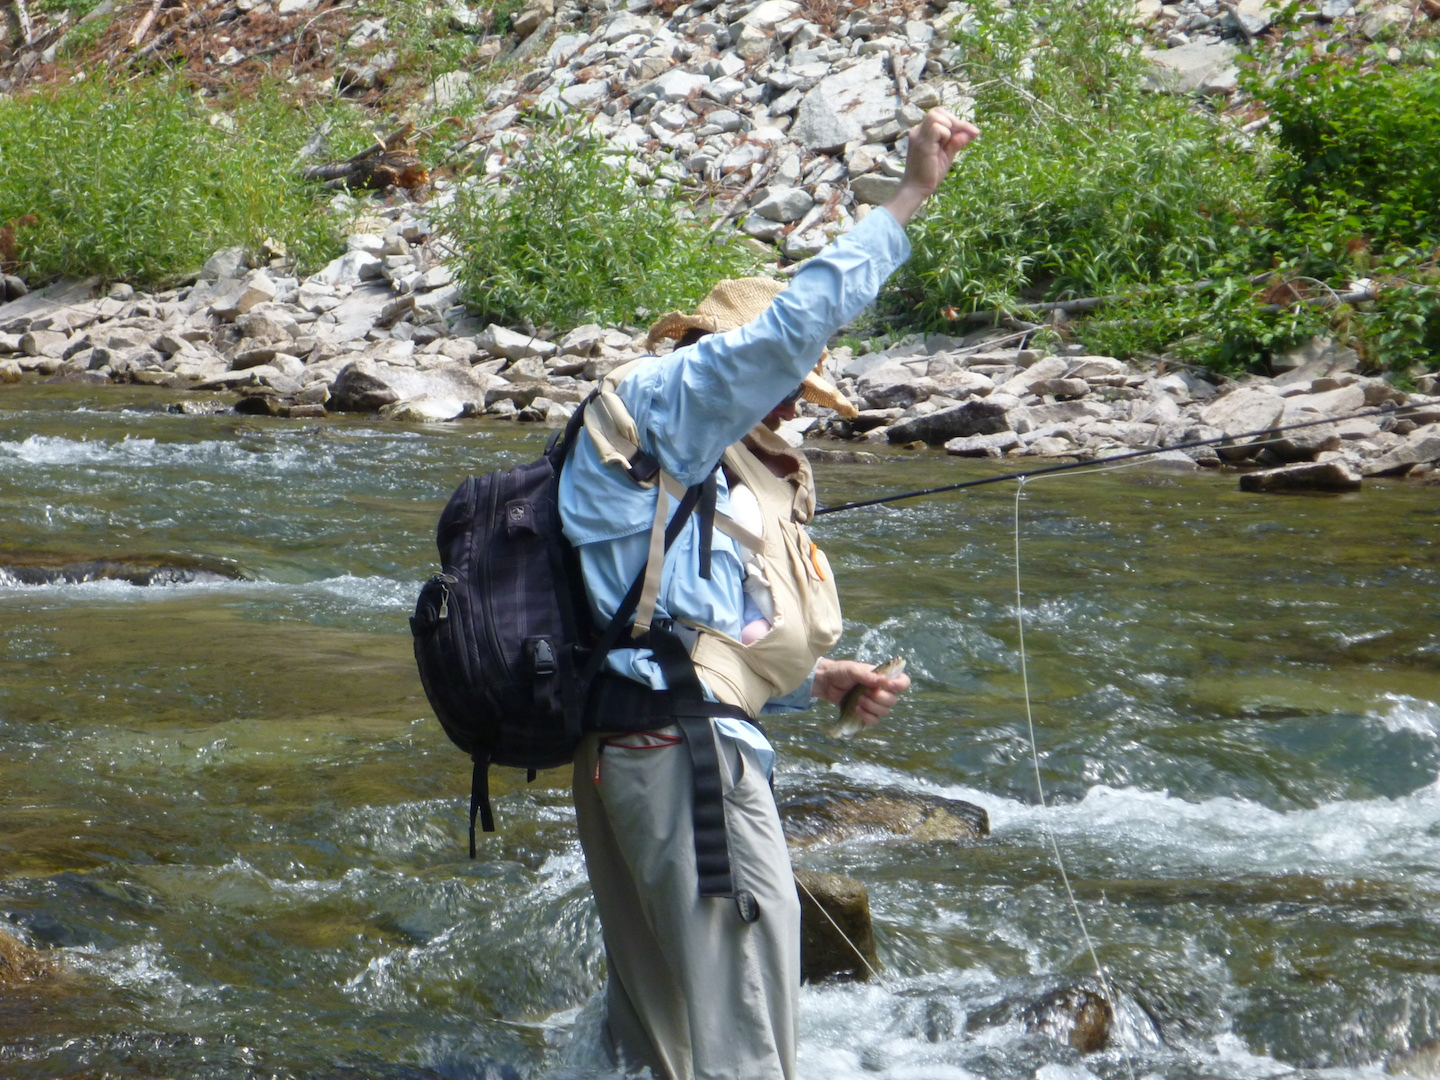 The pack works great, but it can be tricky to unhook fish/tie on flies/jump in the river with it on.